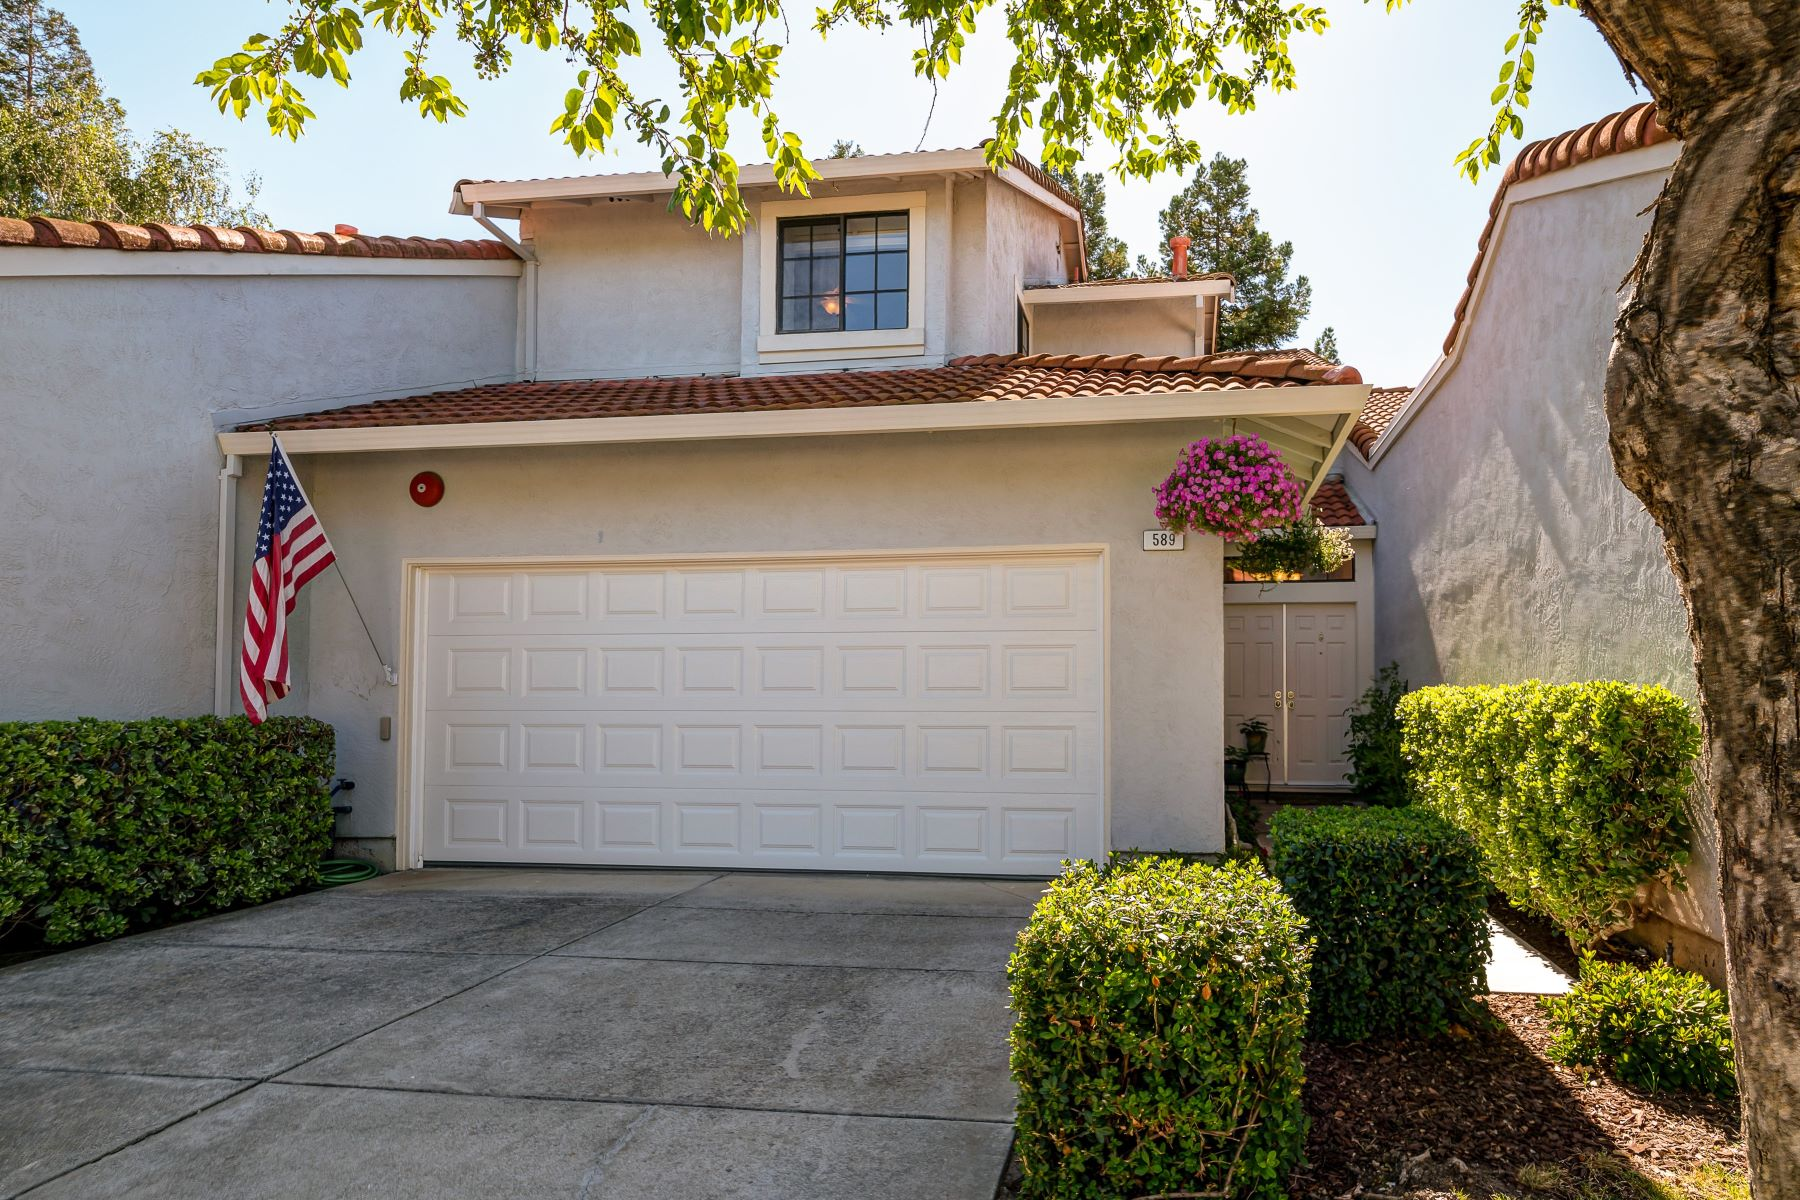 townhouses for Sale at 589 Mulqueeney Street, Livermore, CA 94550 589 Mulqueeney Street Livermore, California 94550 United States